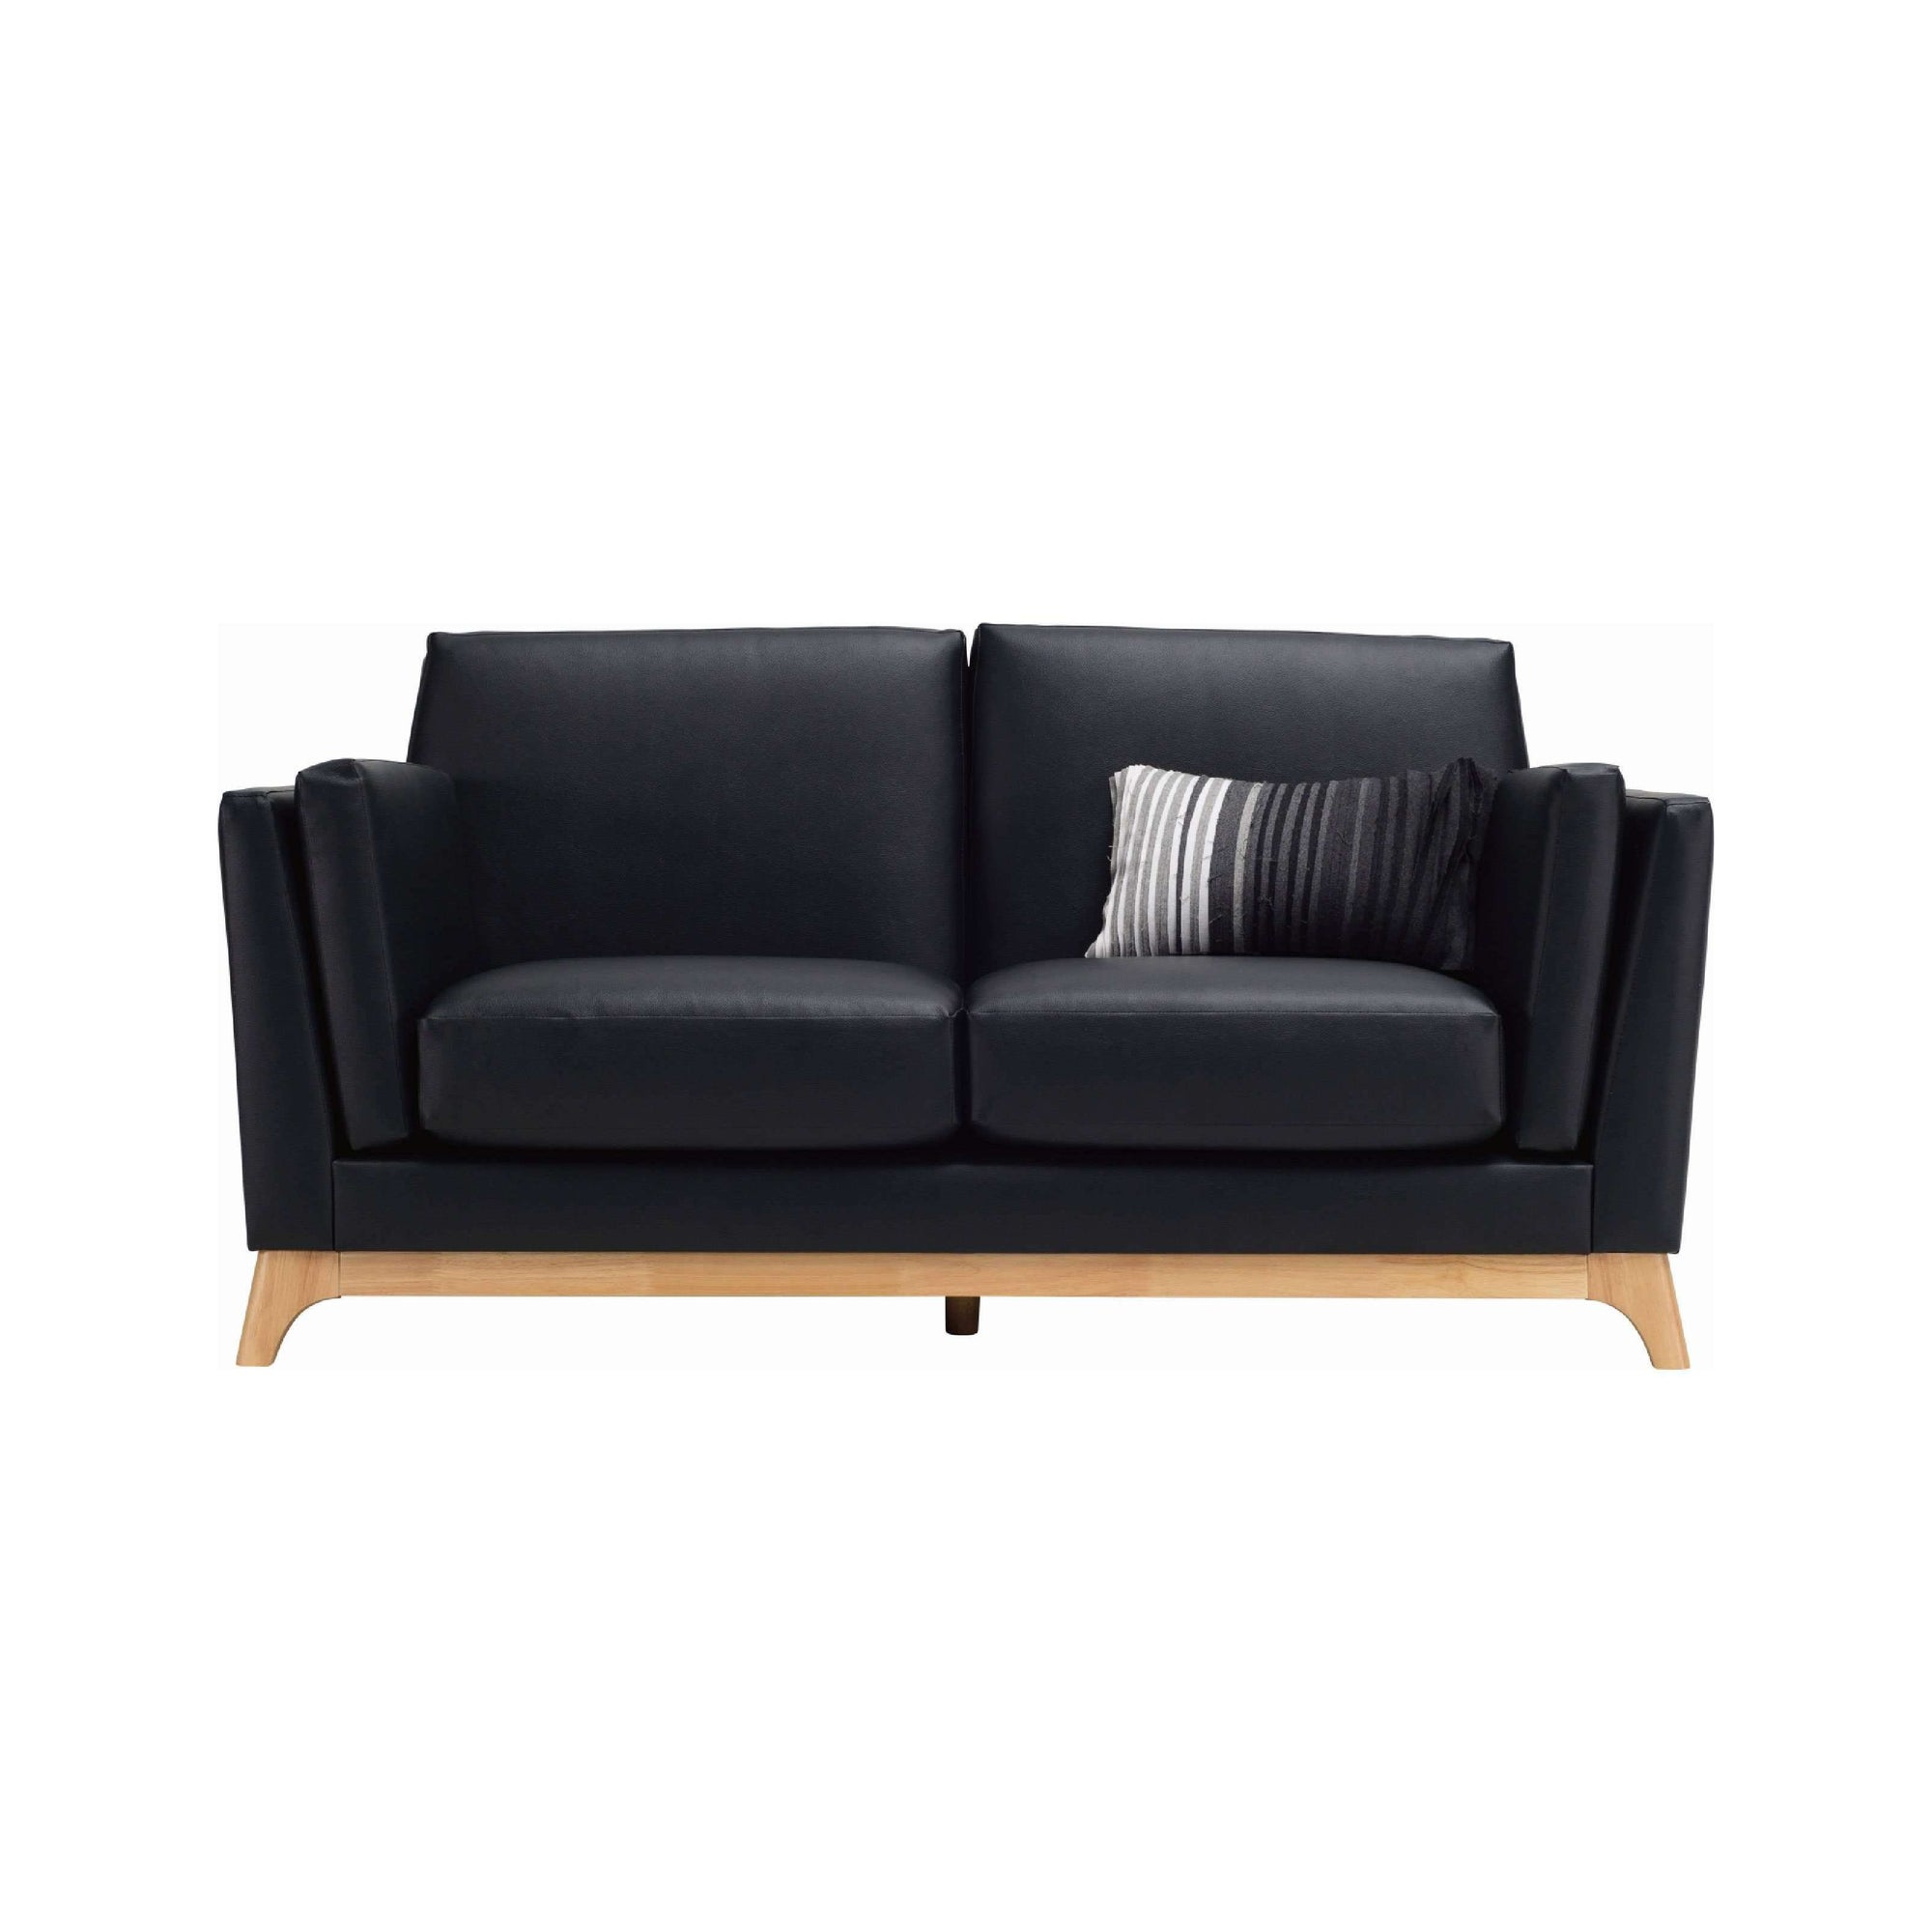 CENI 2 Seater Sofa in Espresso Colour Premium Vinyl